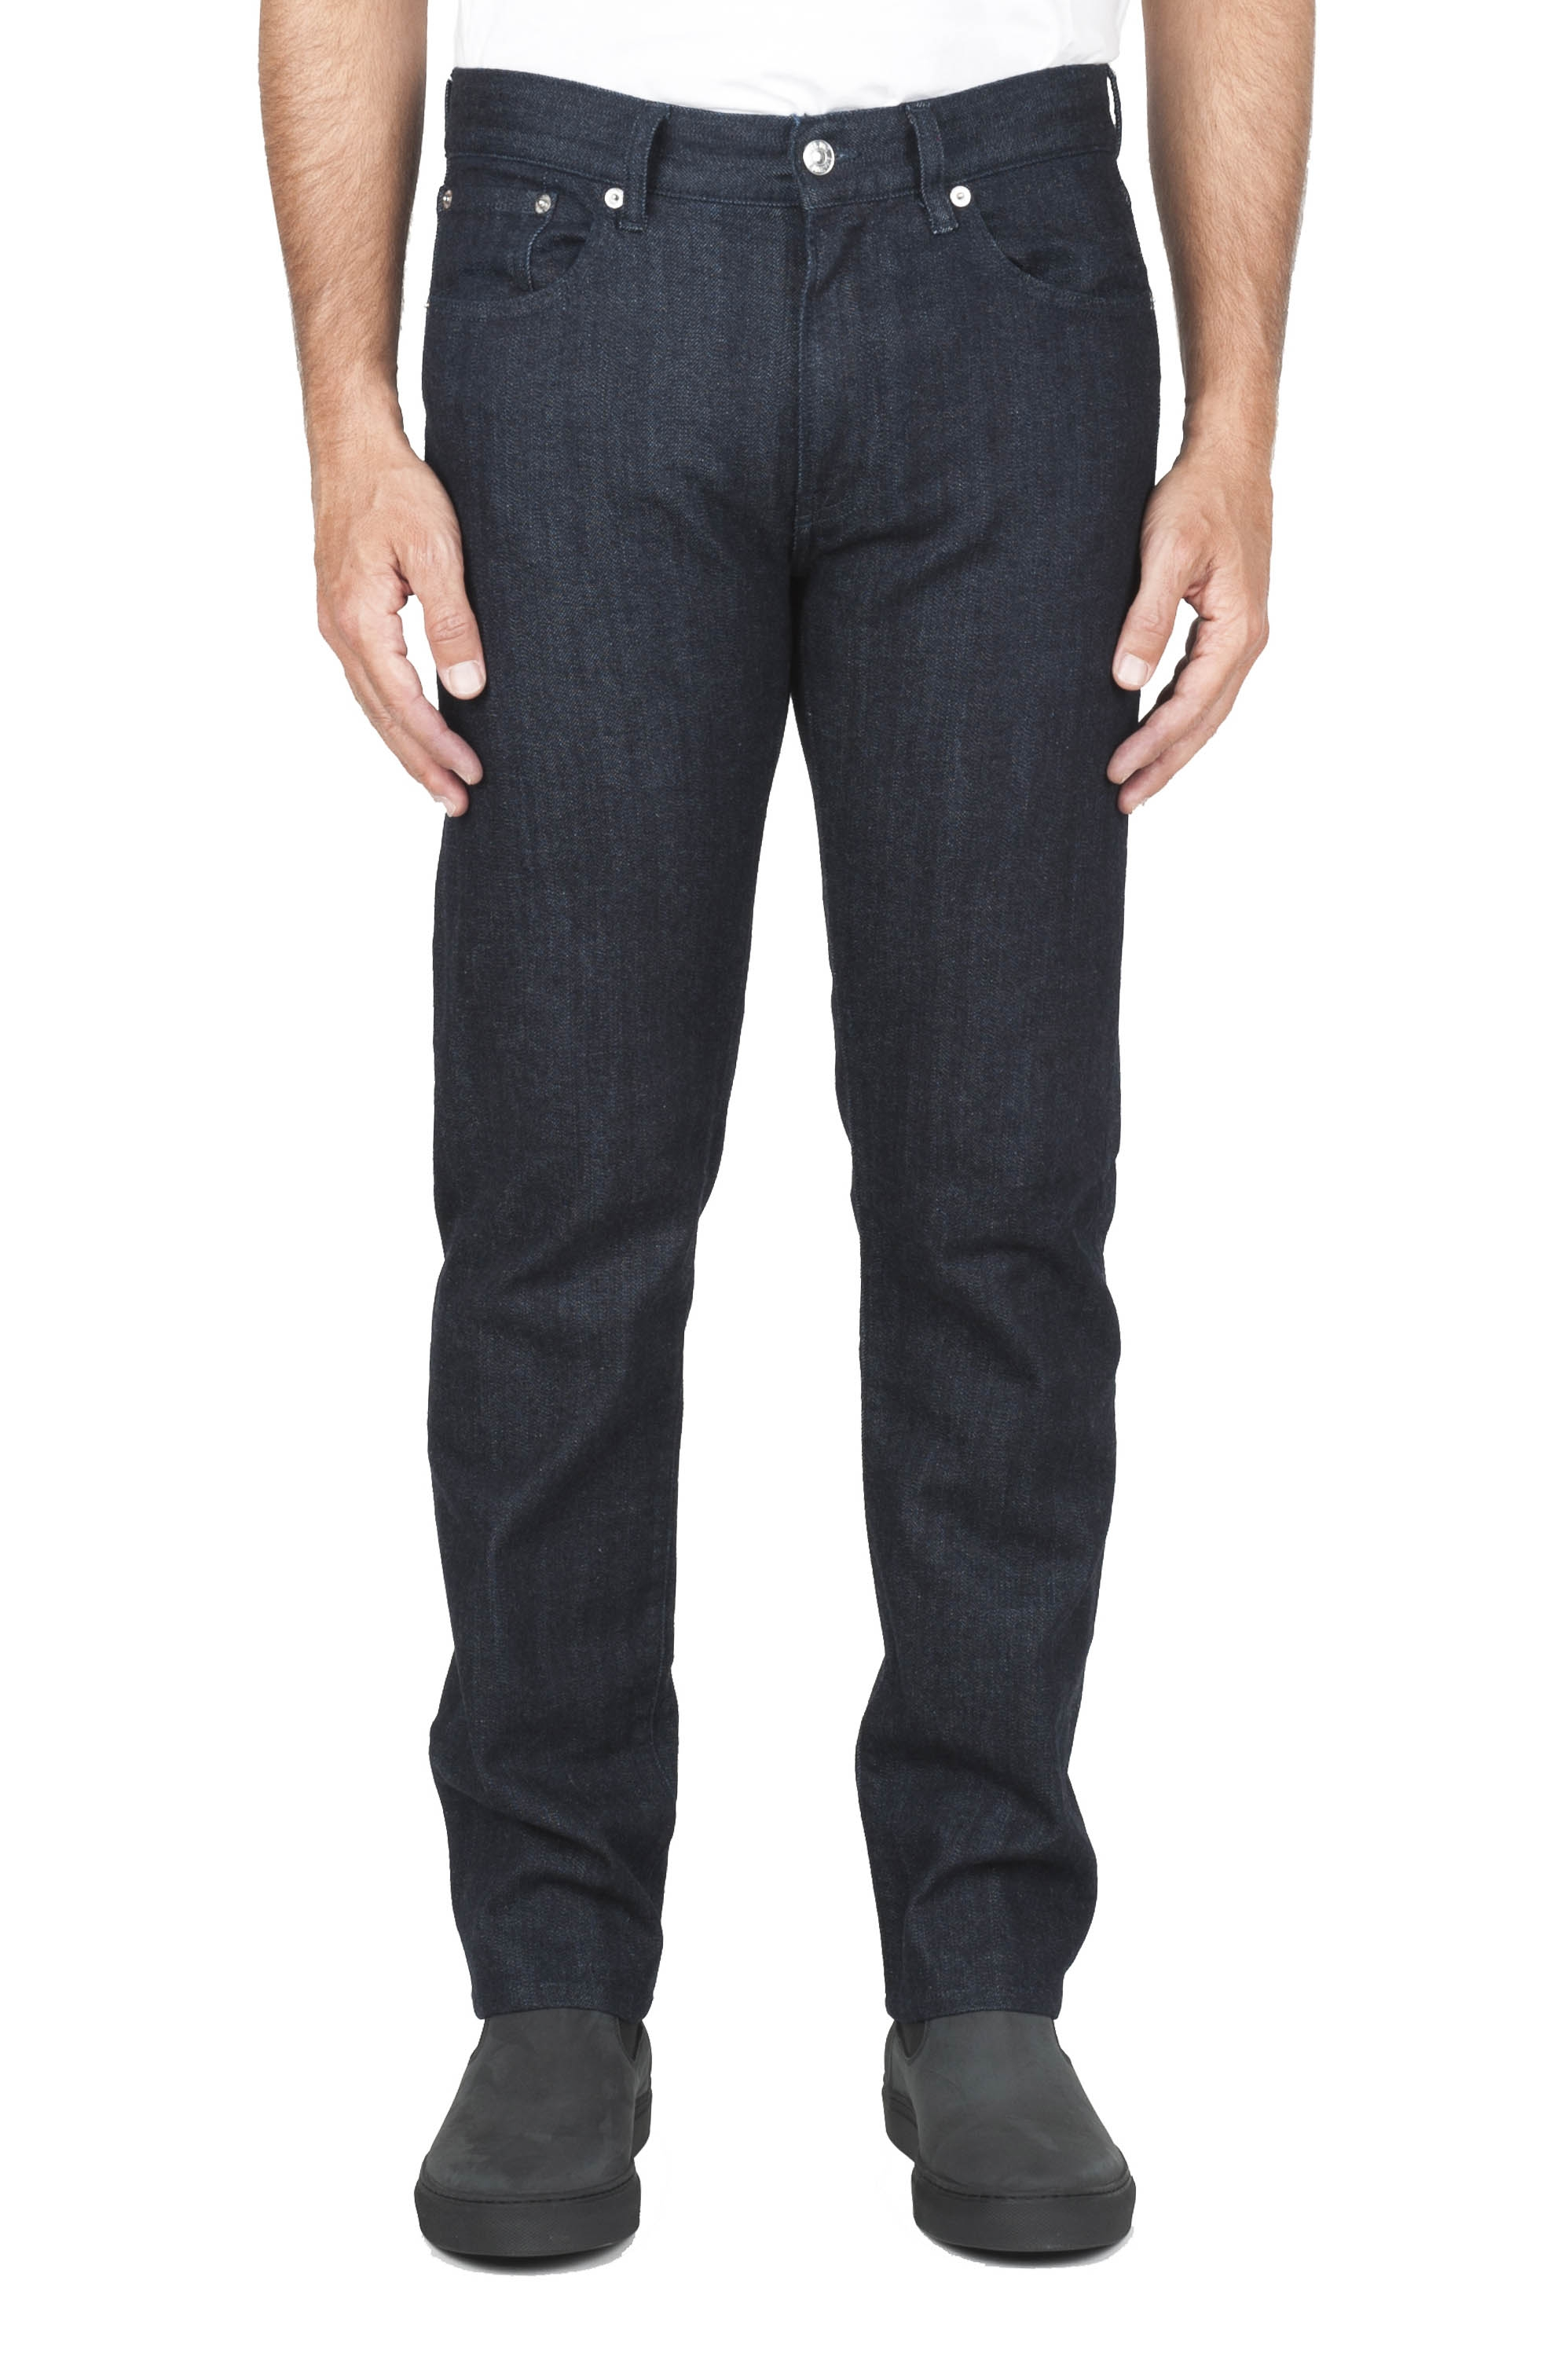 SBU 03113_2020AW Natural indigo dyed washed japanese stretch cotton selvedge denim jeans 01